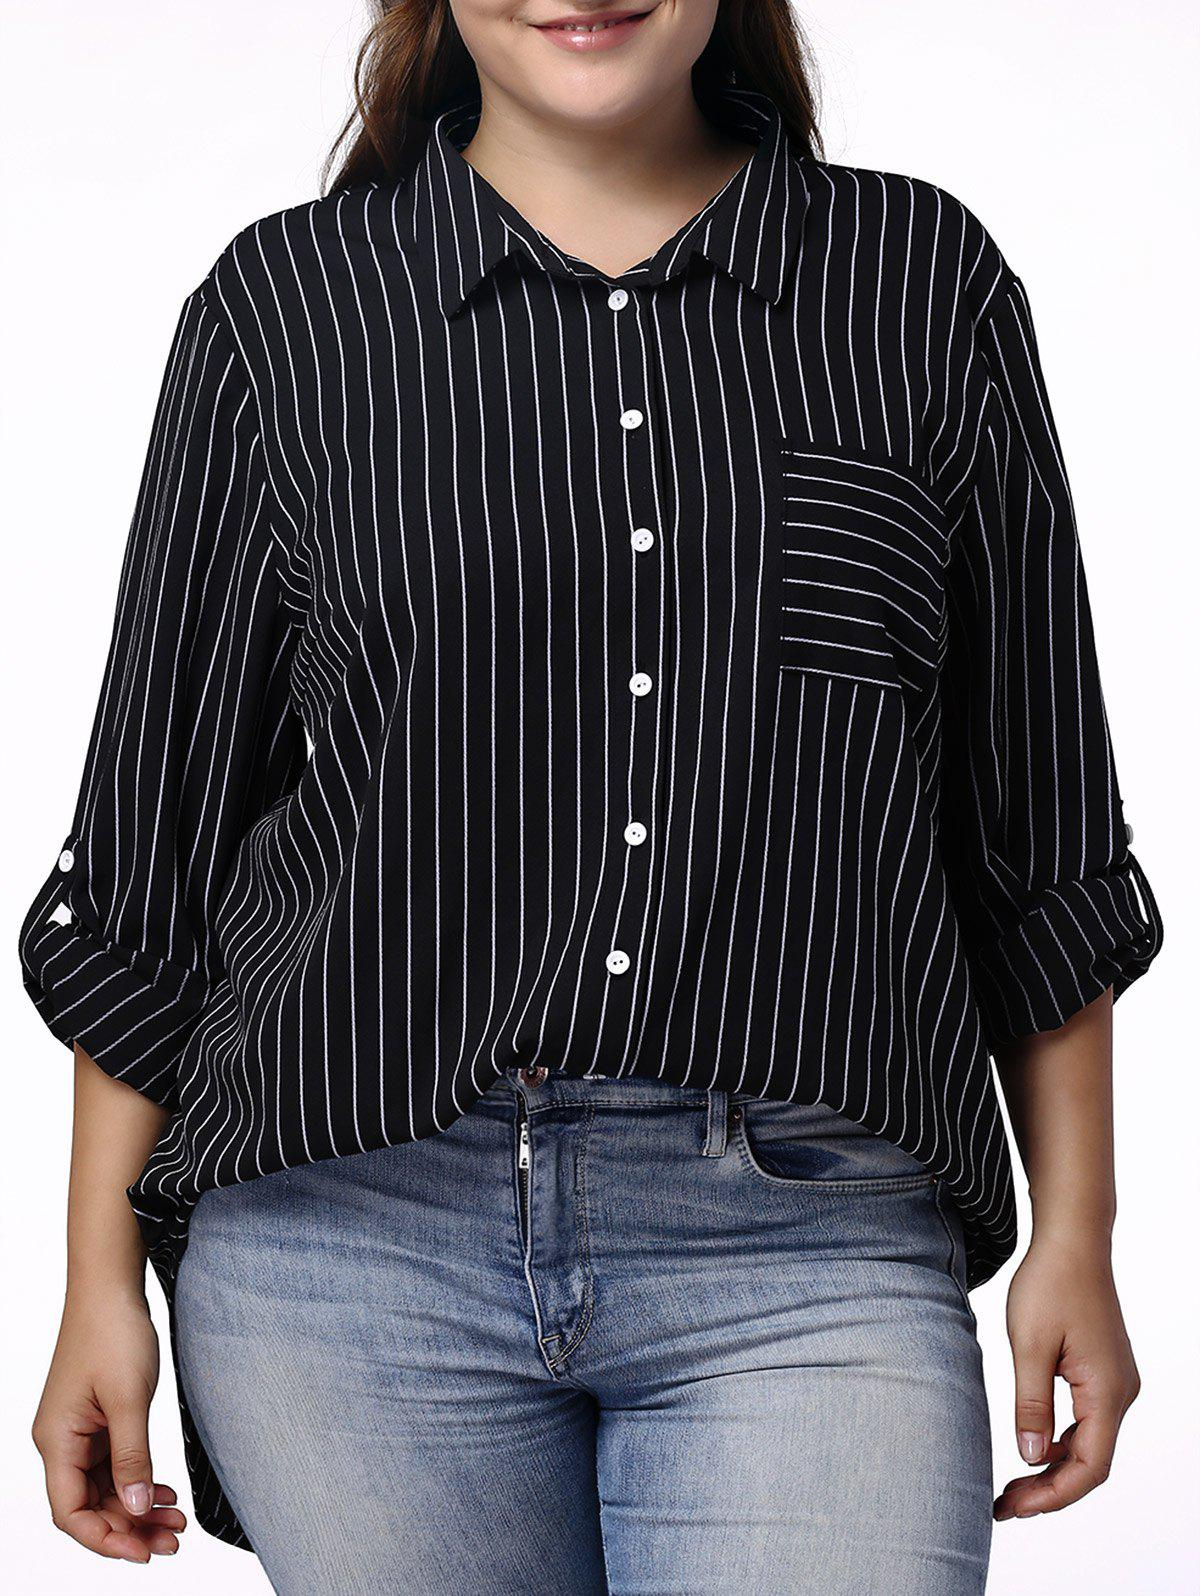 Casual Pinstriped 3/4 Sleeve Plus Size Shirt For Women - BLACK XL